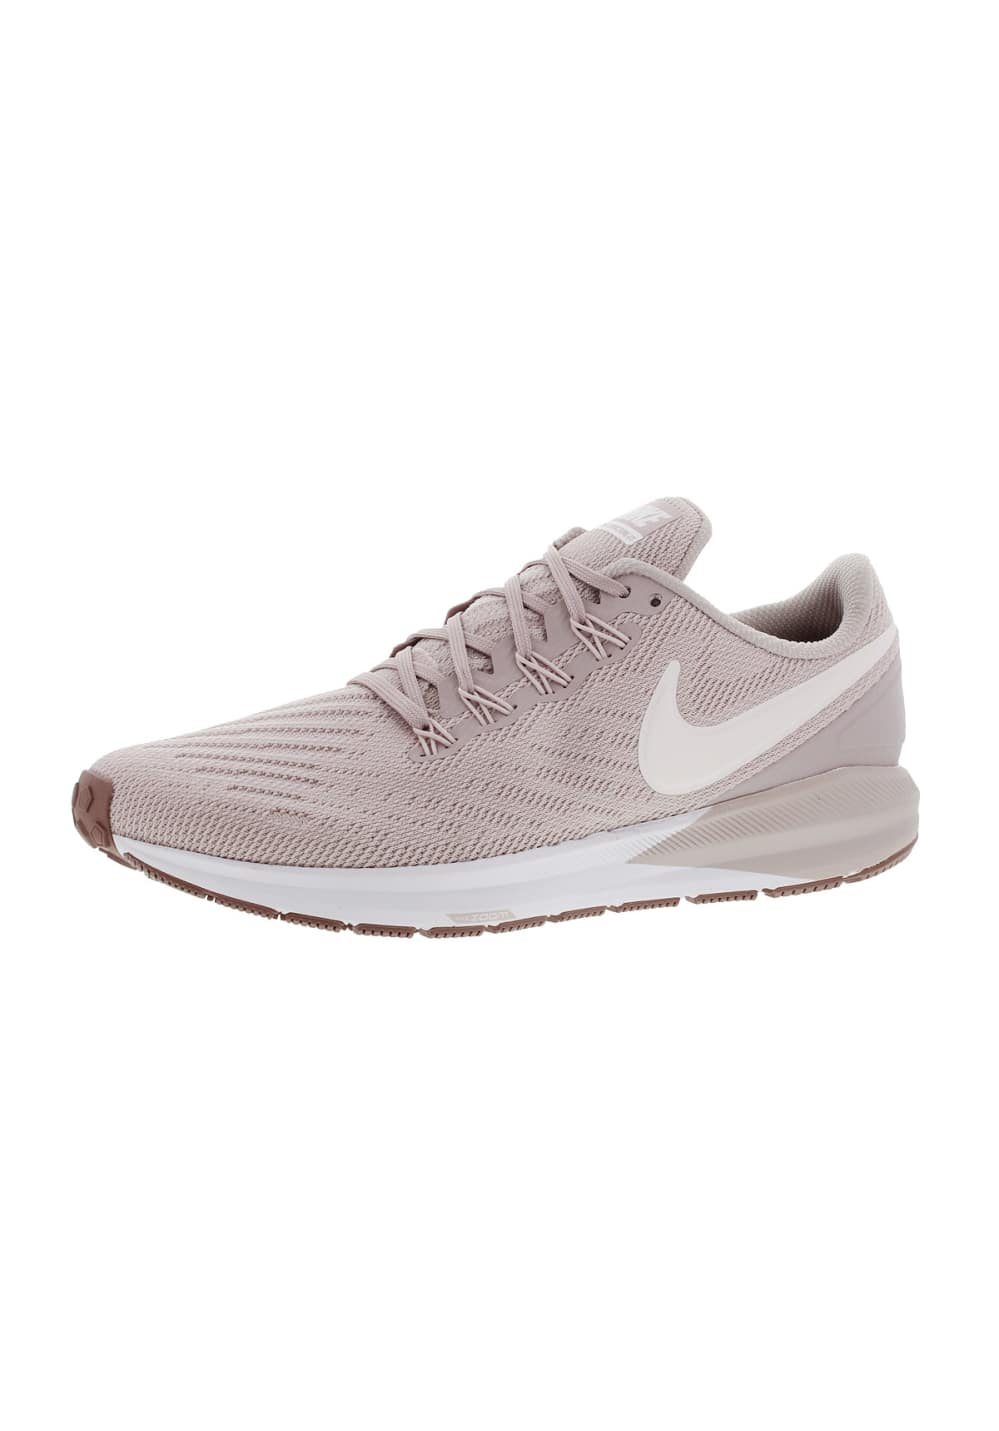 20db21761 Nike Air Zoom Structure 22 - Running shoes for Women - Pink